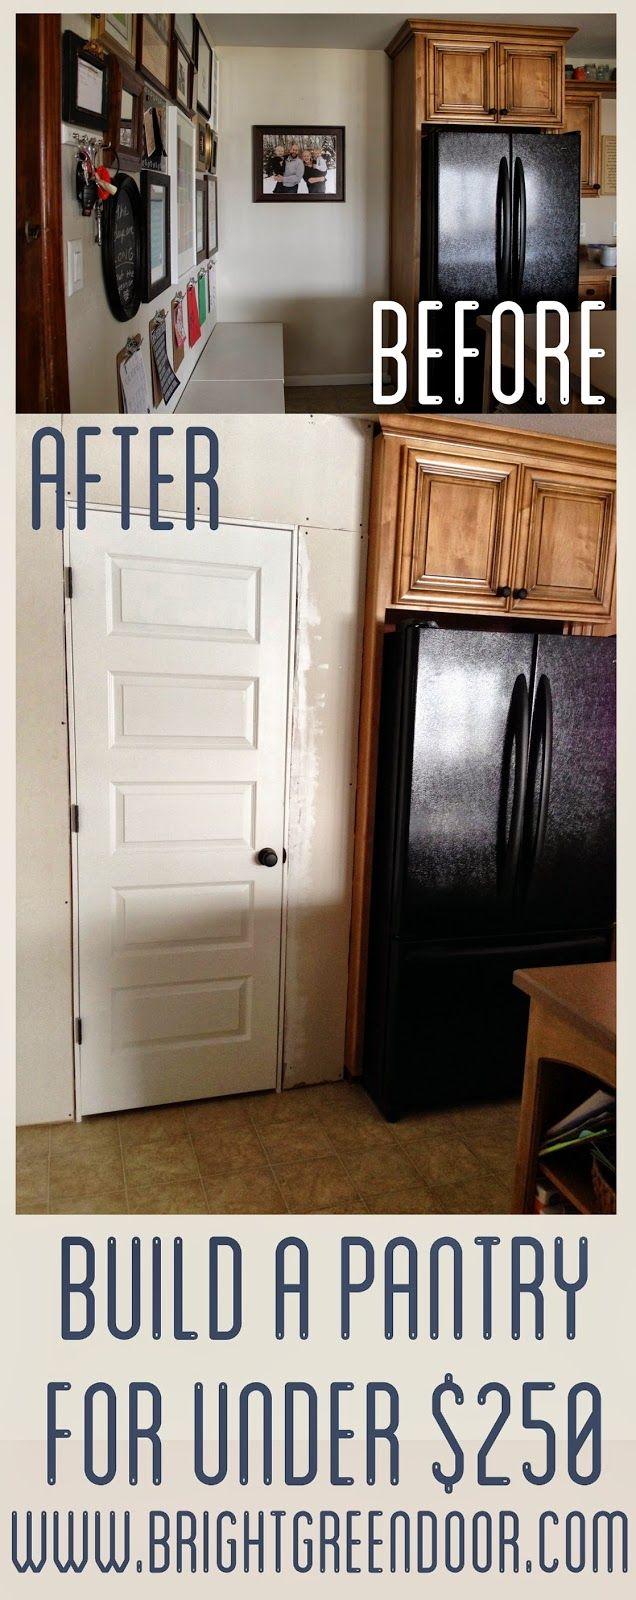 How to DIY a Kitchen Pantry on a Budget